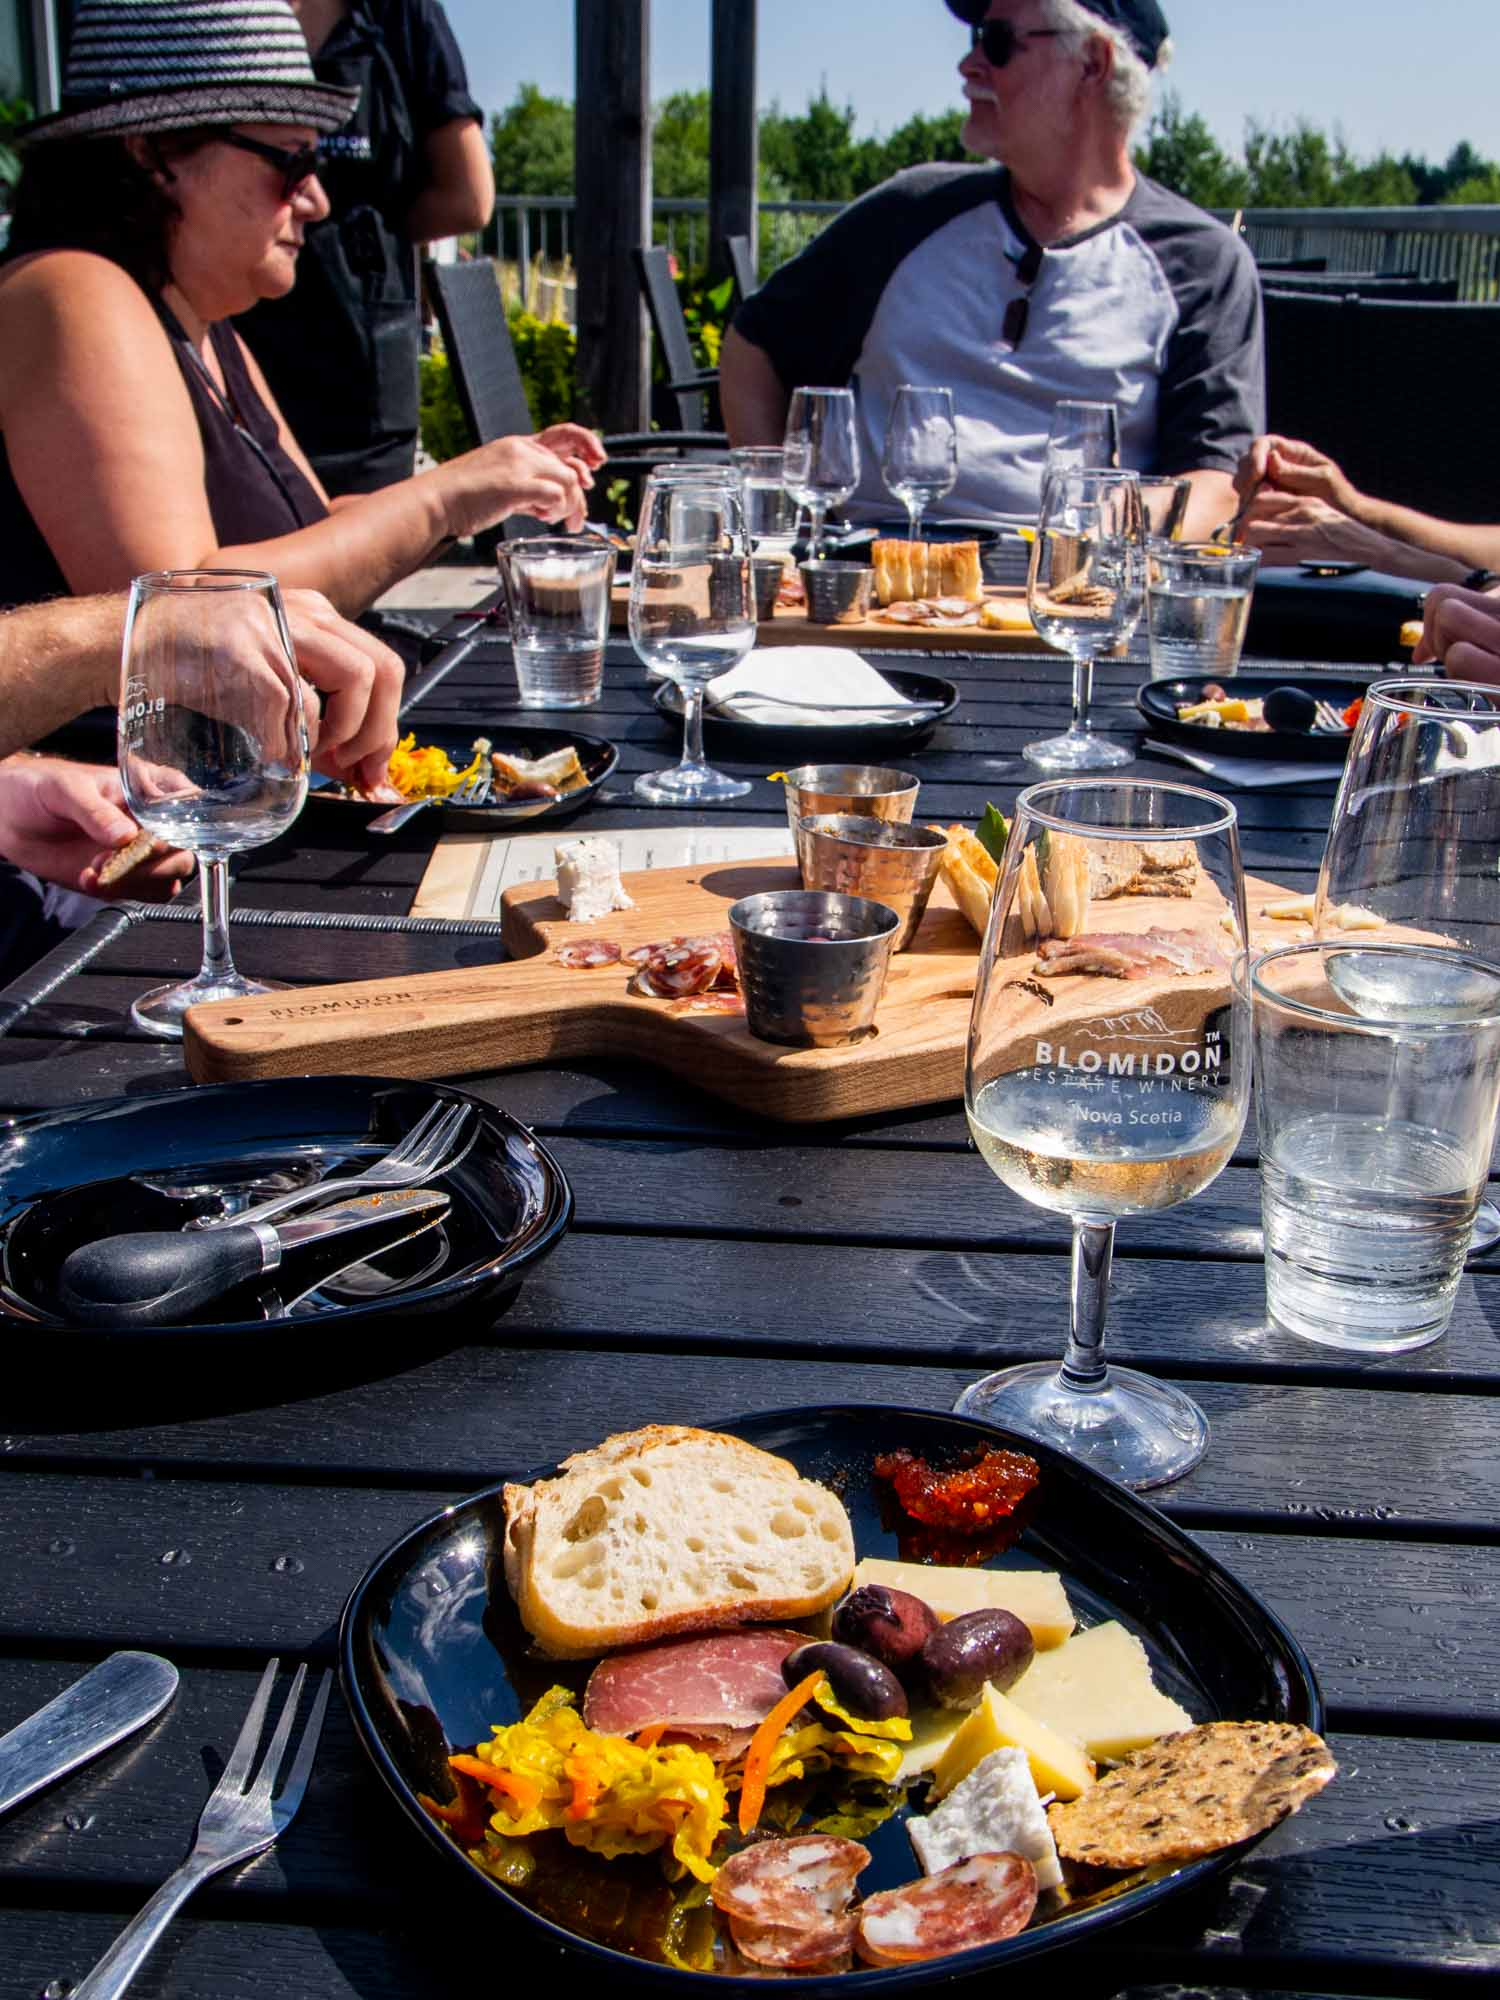 Blomidon Estate Winery in Canning Nova Scotia, people at table drinking Nova Scotia wine and eating charcuterie.